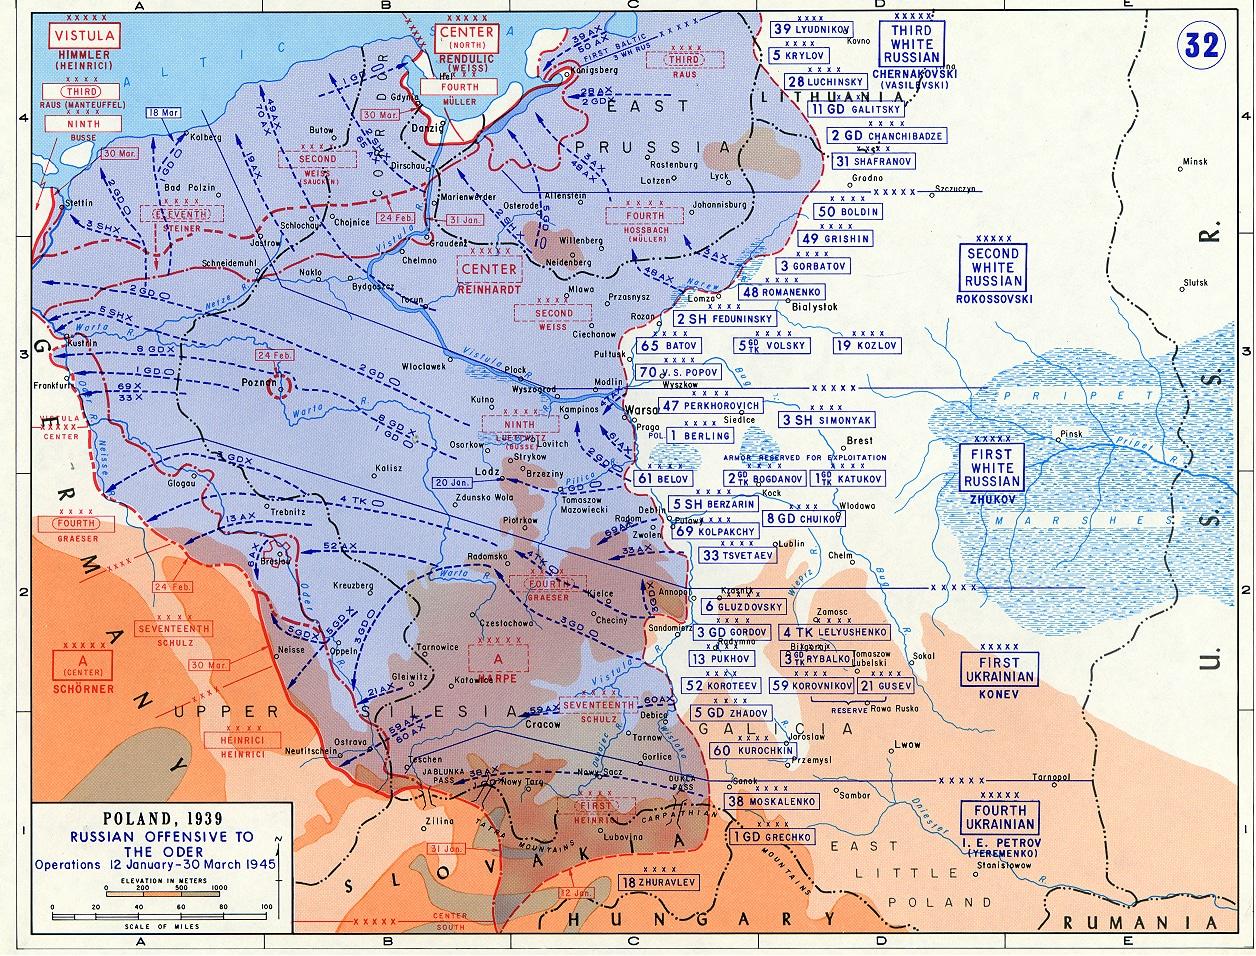 The Vistula-Oder Campaign